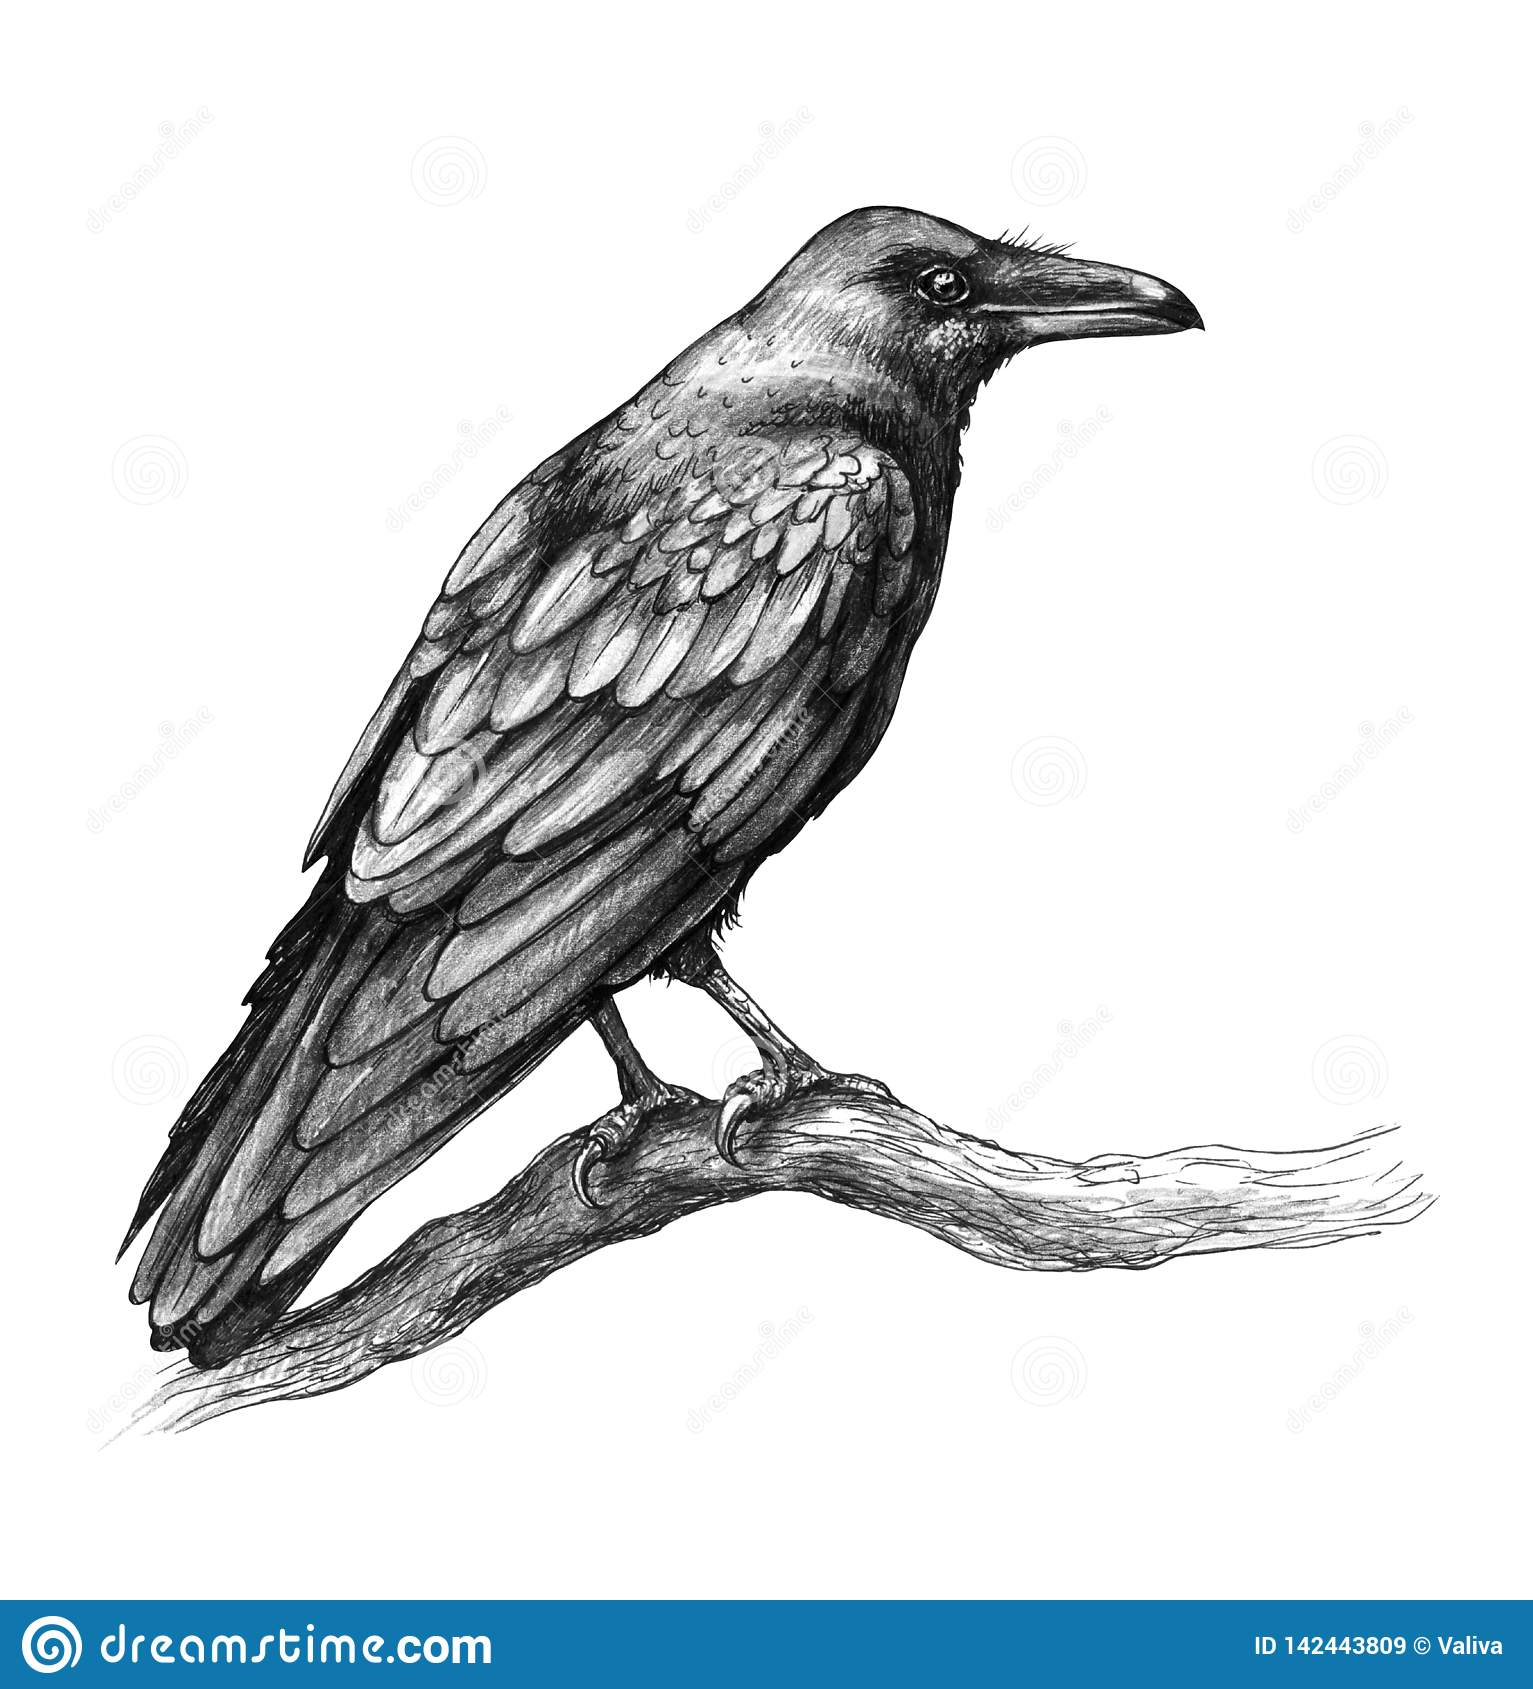 Raven side view pencil drawing stock illustration illustration of